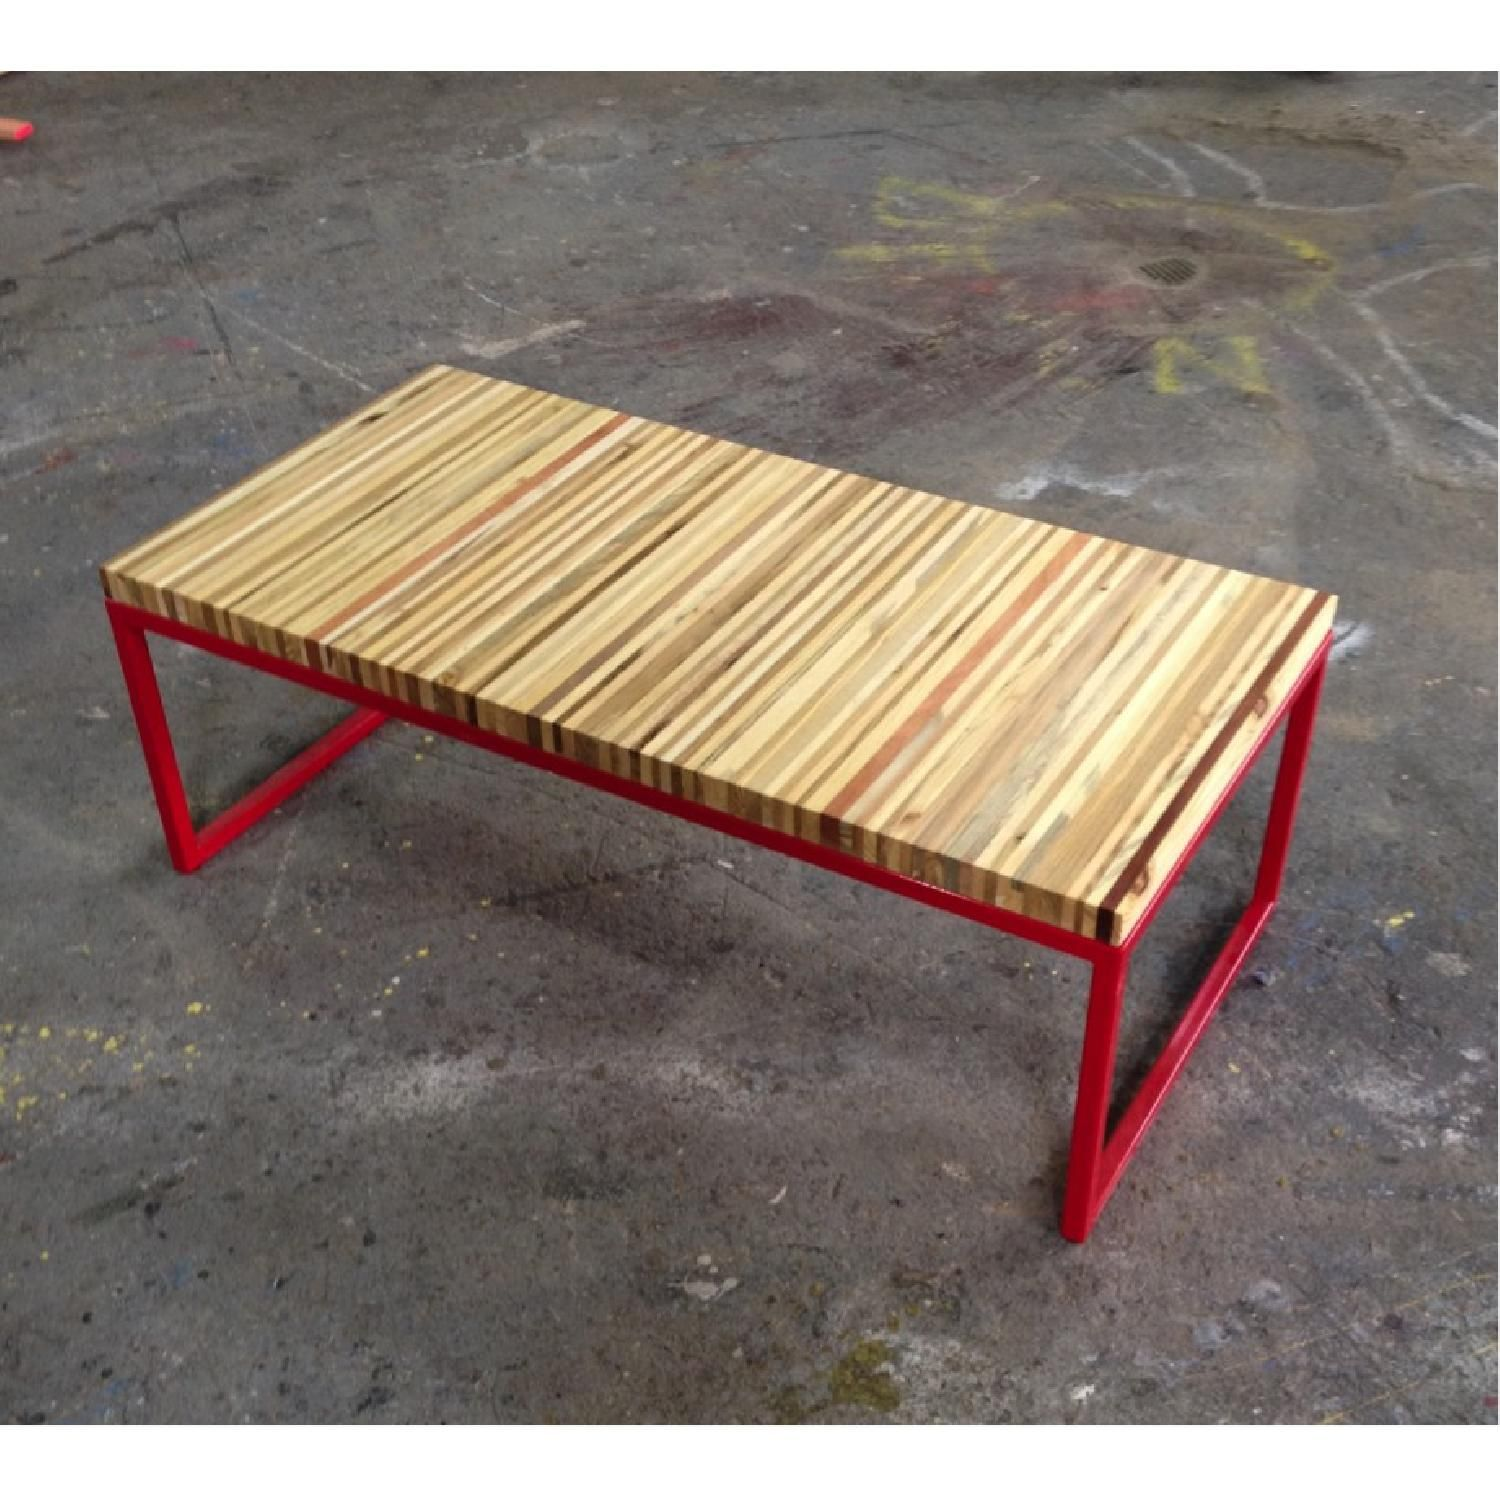 Streetwood Inc Reclaimed Pallet Wood and Steel Bench ...